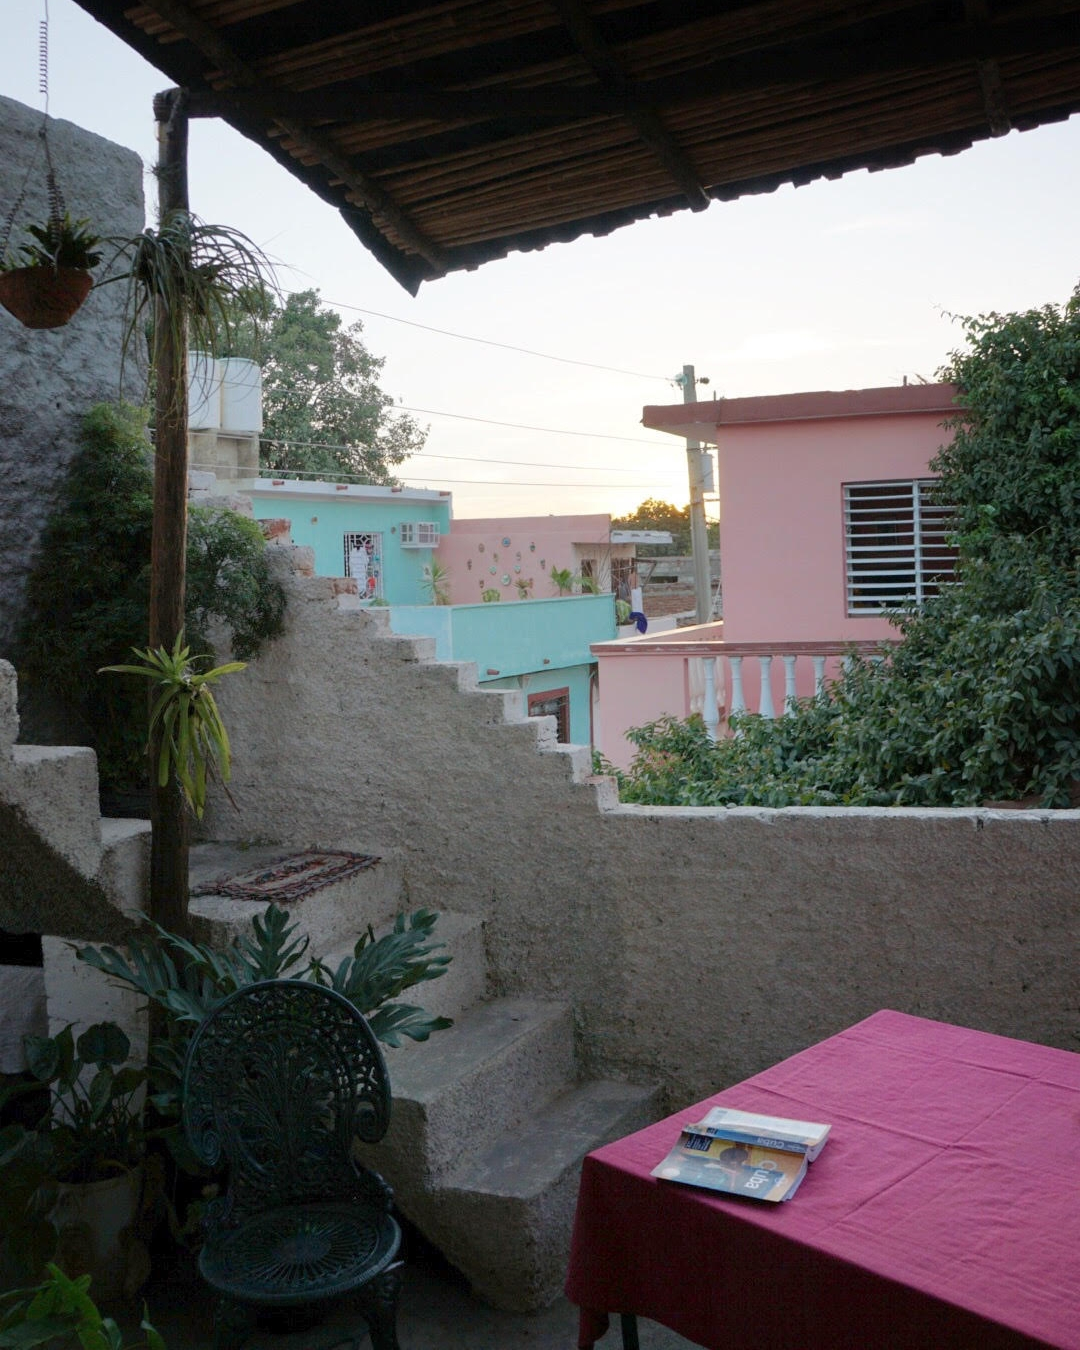 Patio at Hostal La Sirena